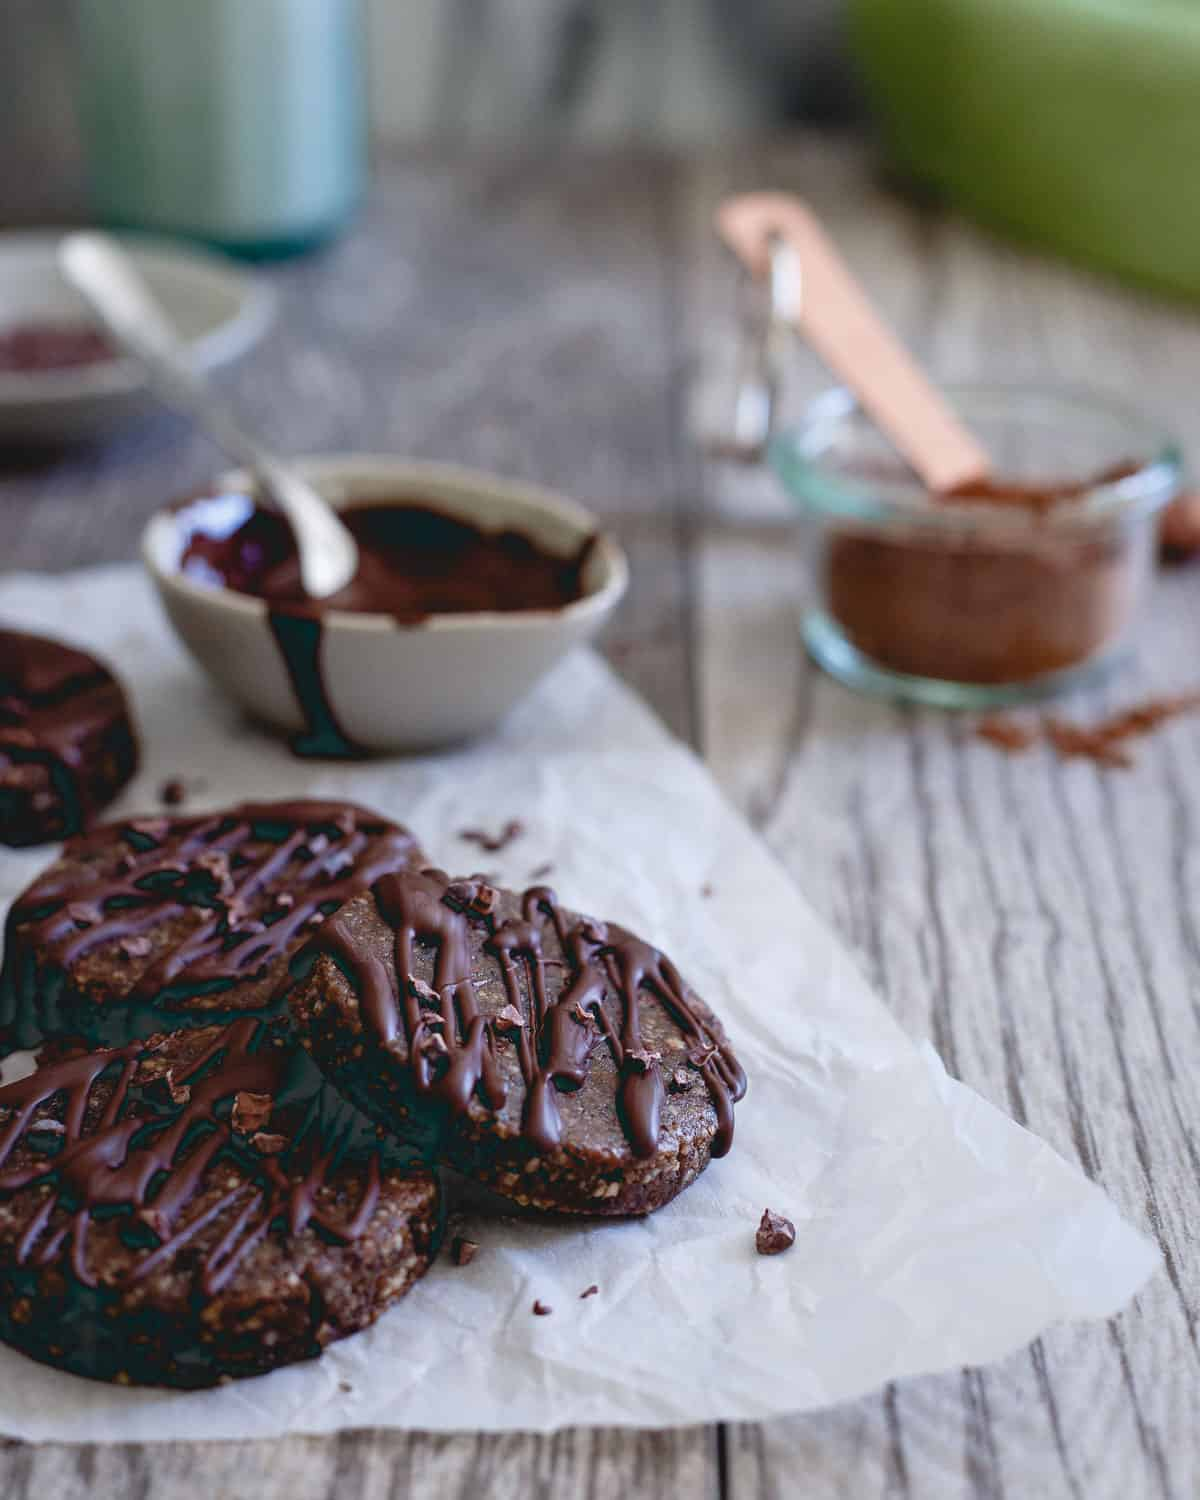 These raw brownie bites are paleo, gluten-free and vegan. Kick that chocolate craving with these healthy bites!